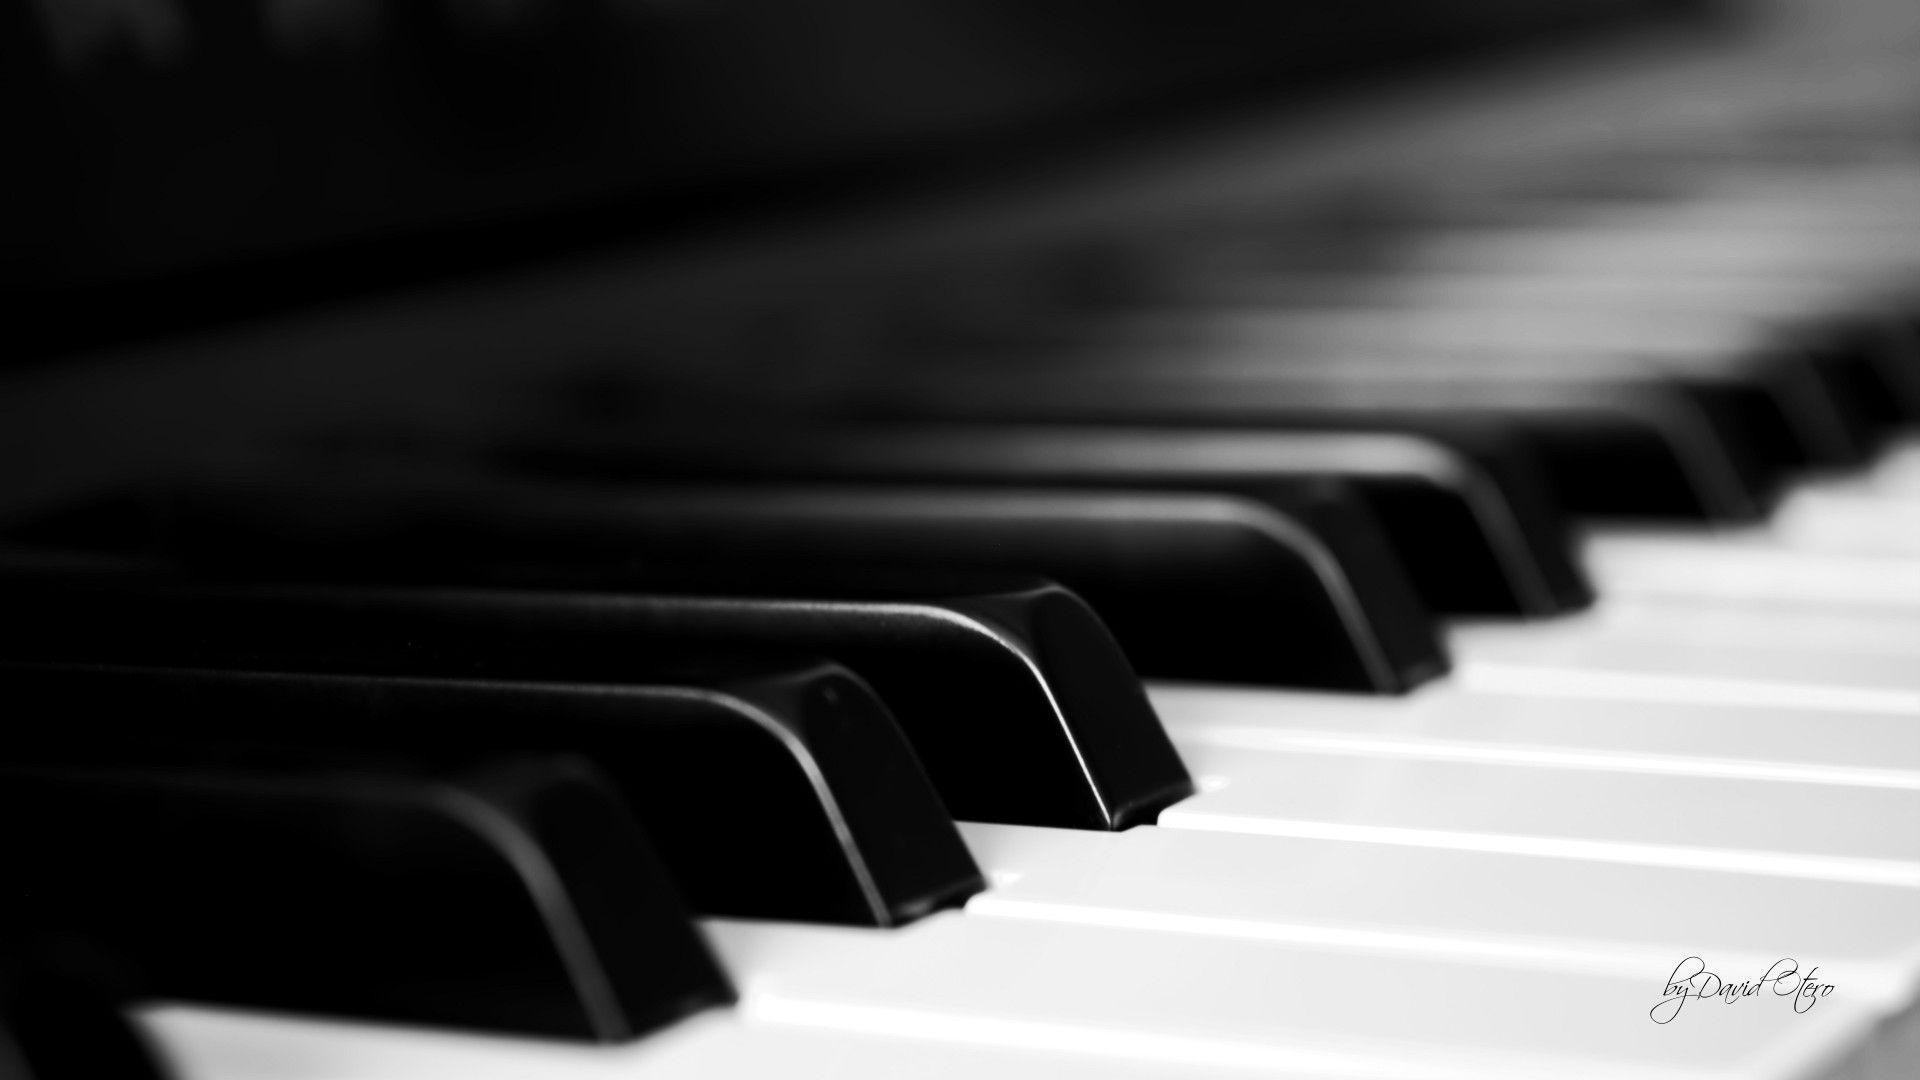 1920x1080 Wallpapers For > Awesome Piano Wallpapers